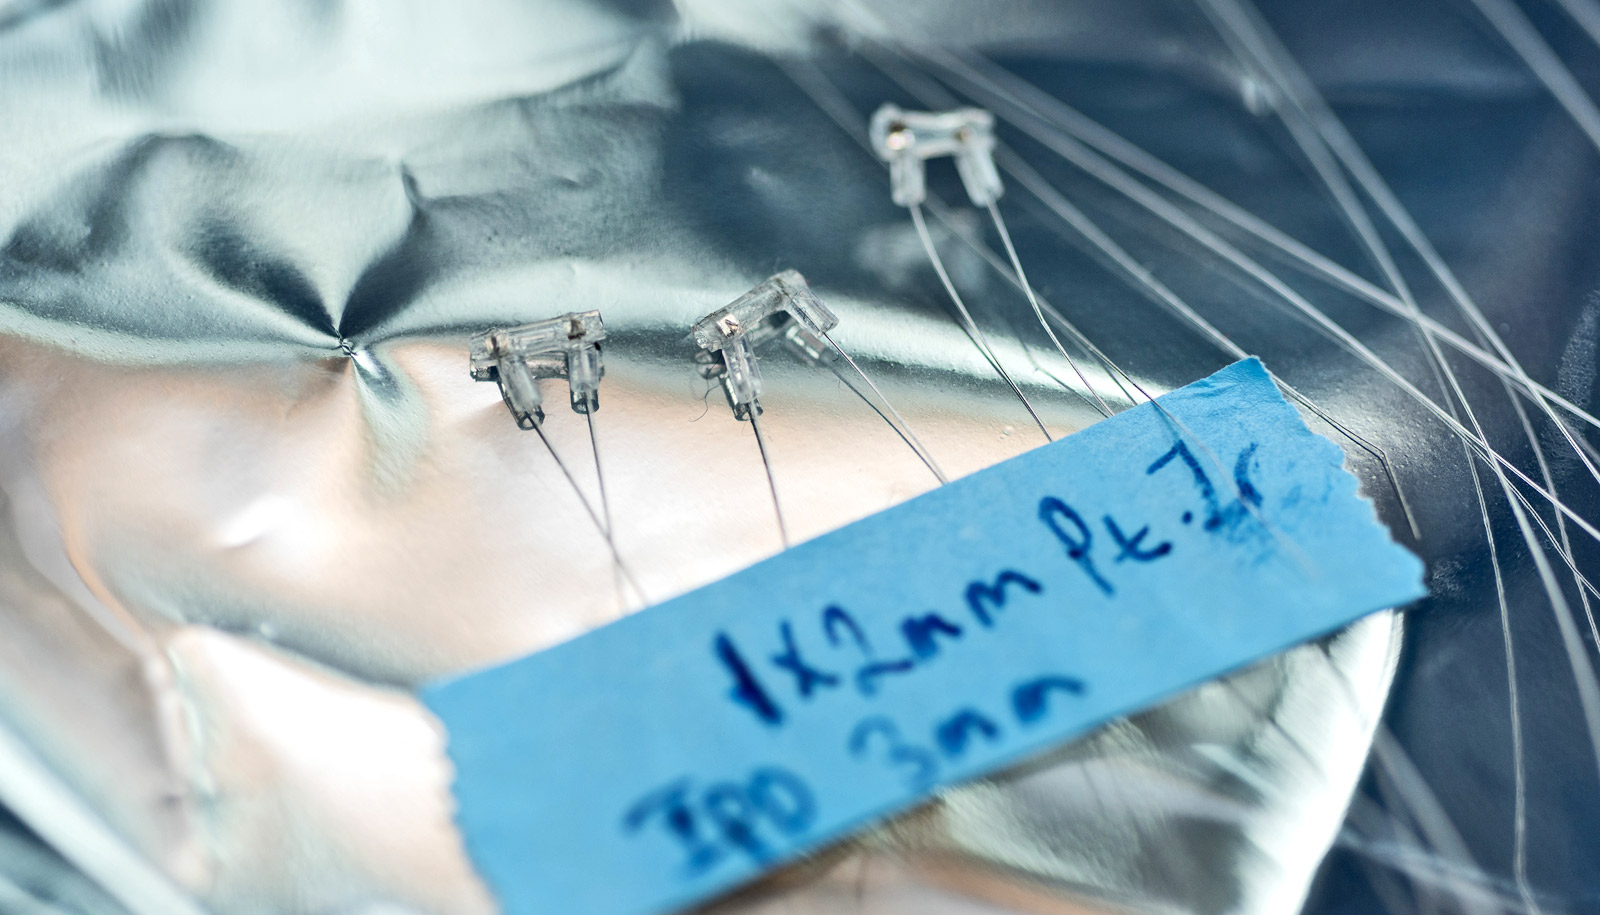 Implant zaps vagus nerve just right to treat inflammation